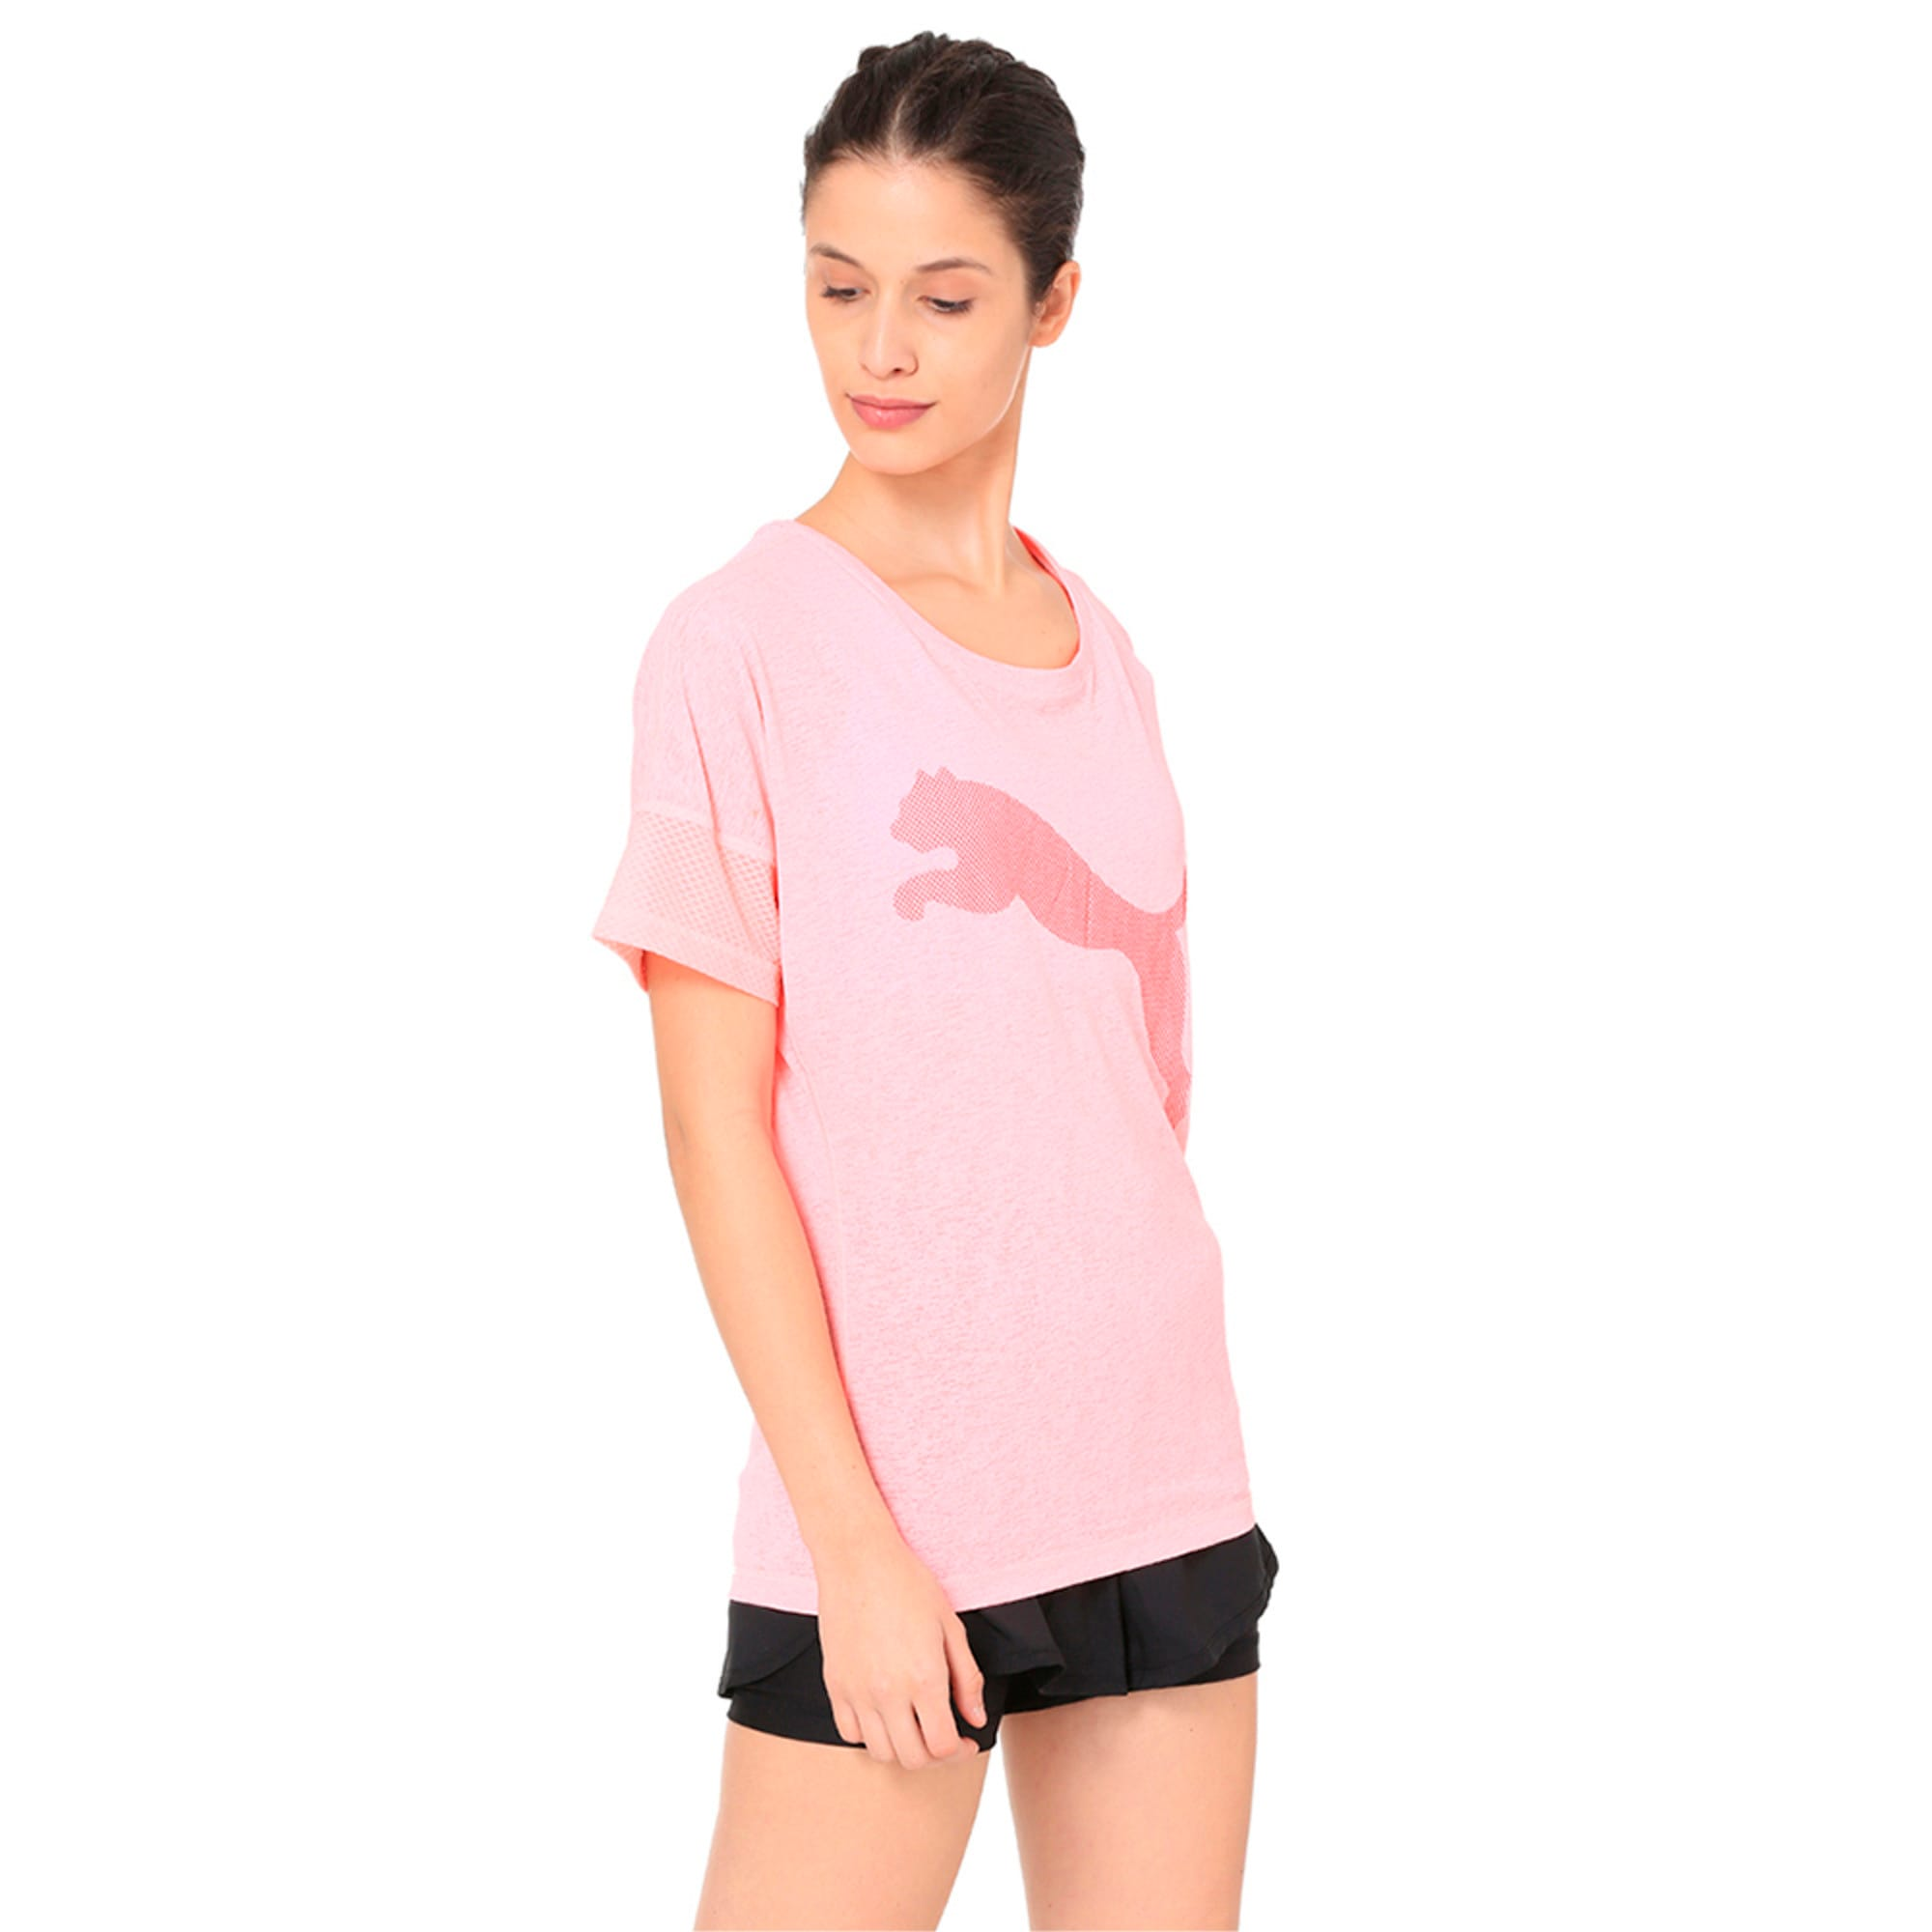 Thumbnail 5 of Active Training Women's Loose T-Shirt, Soft Fluo Peach, medium-IND